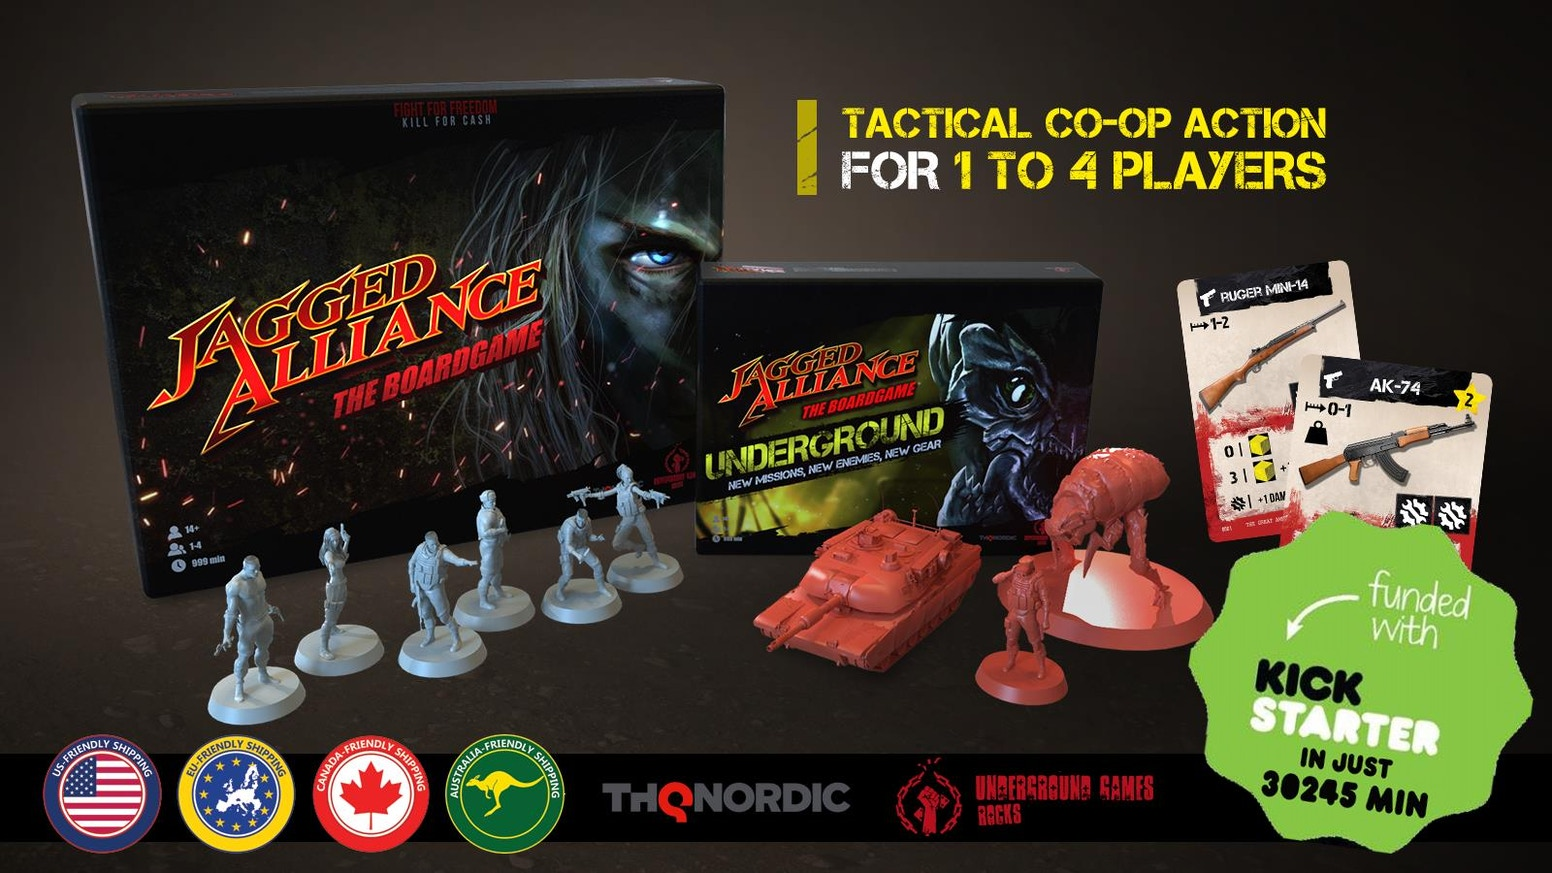 A co-operative, tactical 1-4 player game based on the Jagged Alliance series. Lead, train and gear up your mercs to take back Arulco!German Rules Added!